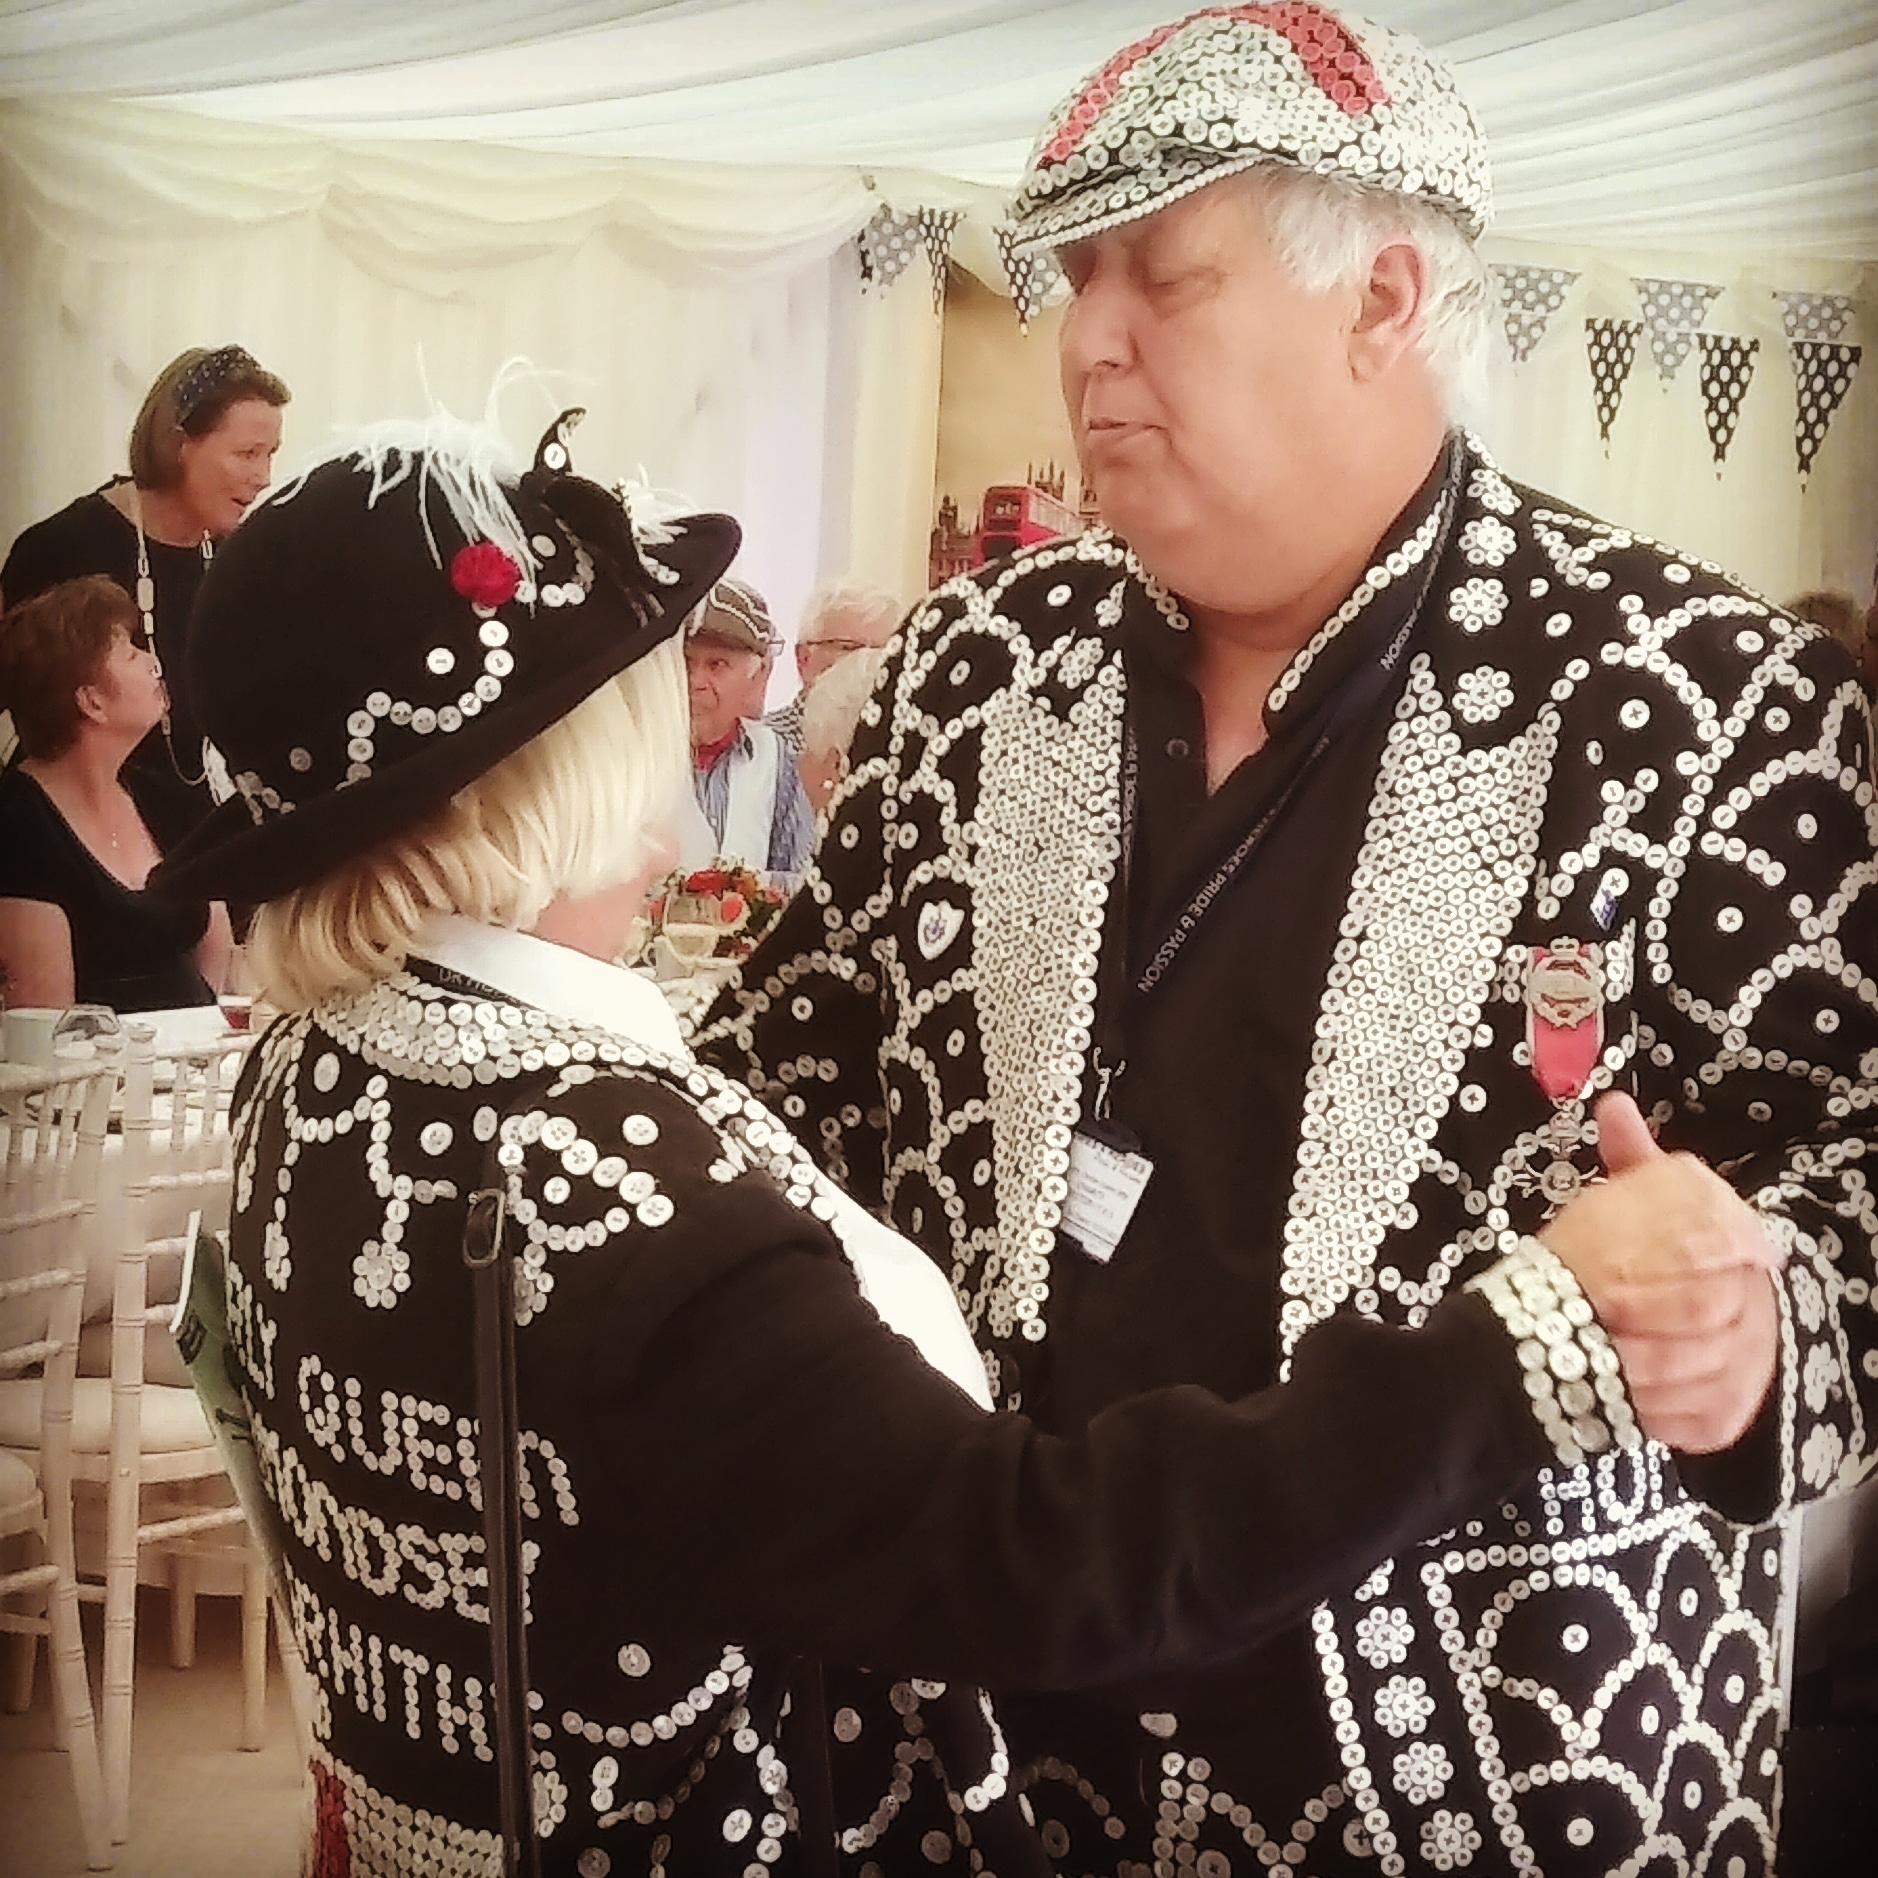 Pearly Kings & Queens at a themed event